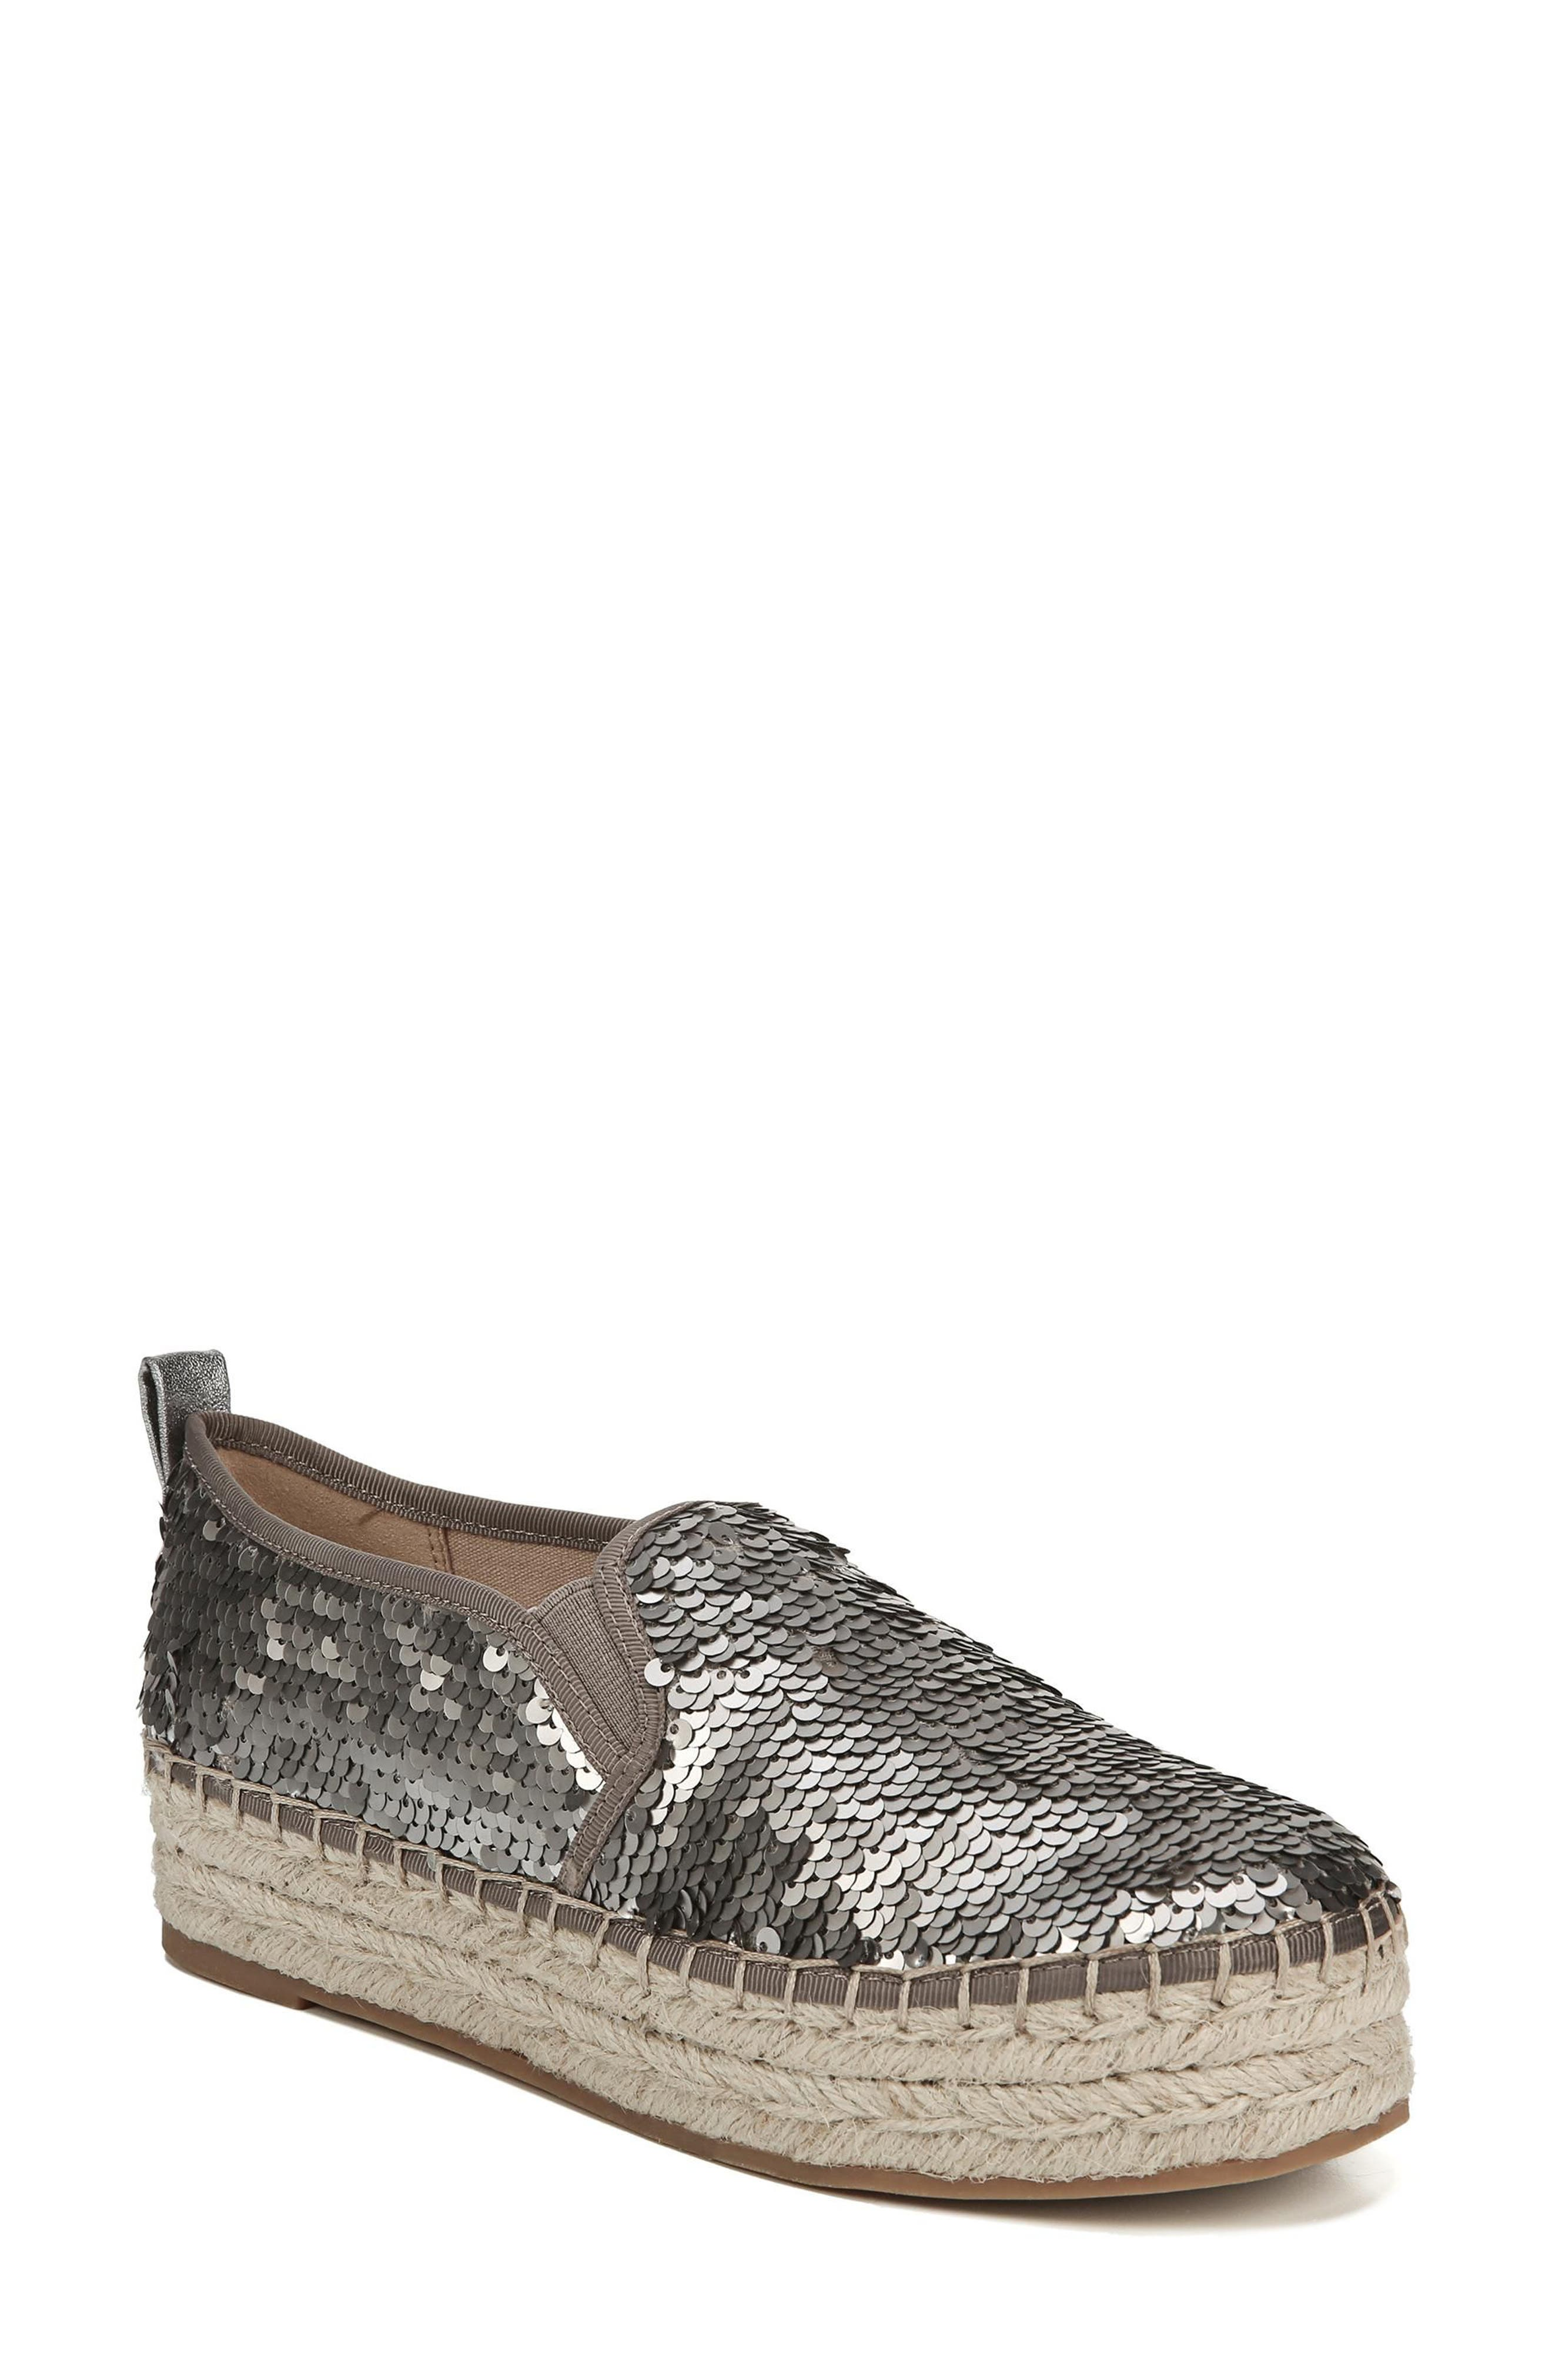 'Carrin' Espadrille Flat,                             Main thumbnail 1, color,                             PEWTER SEQUINS